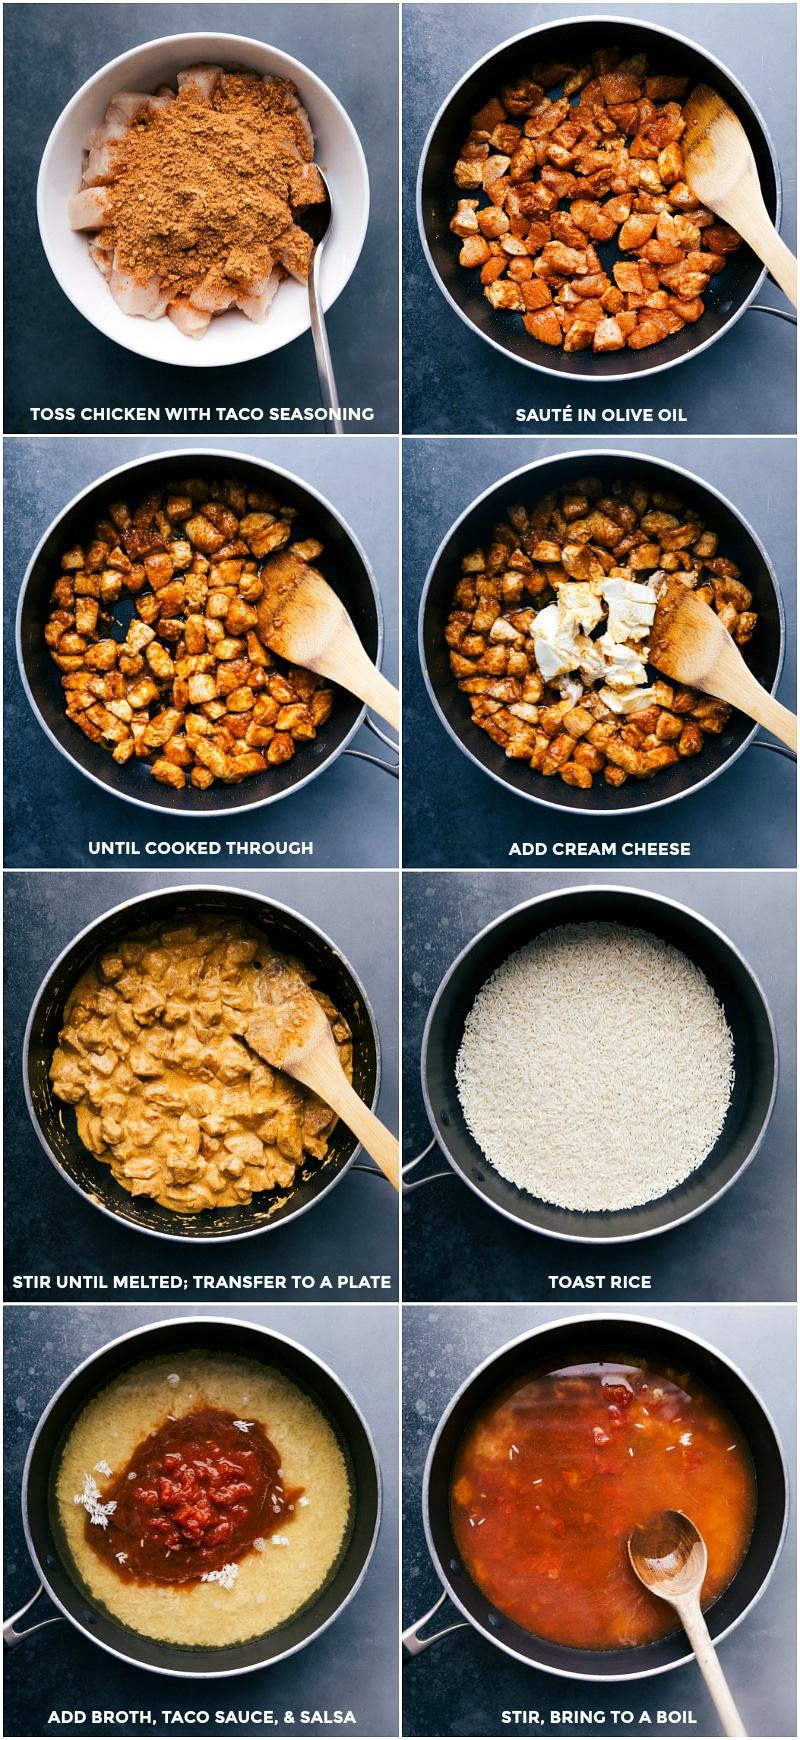 Process shots for making Mexican Chicken and Rice: toss chicken with taco seasoning blend; sauté in olive oil until cooked through; add cream cheese; stir to melt and then transfer to a plate; toast rice; add broth, taco sauce and salsa; bring to a boil and simmer, covered, until done.